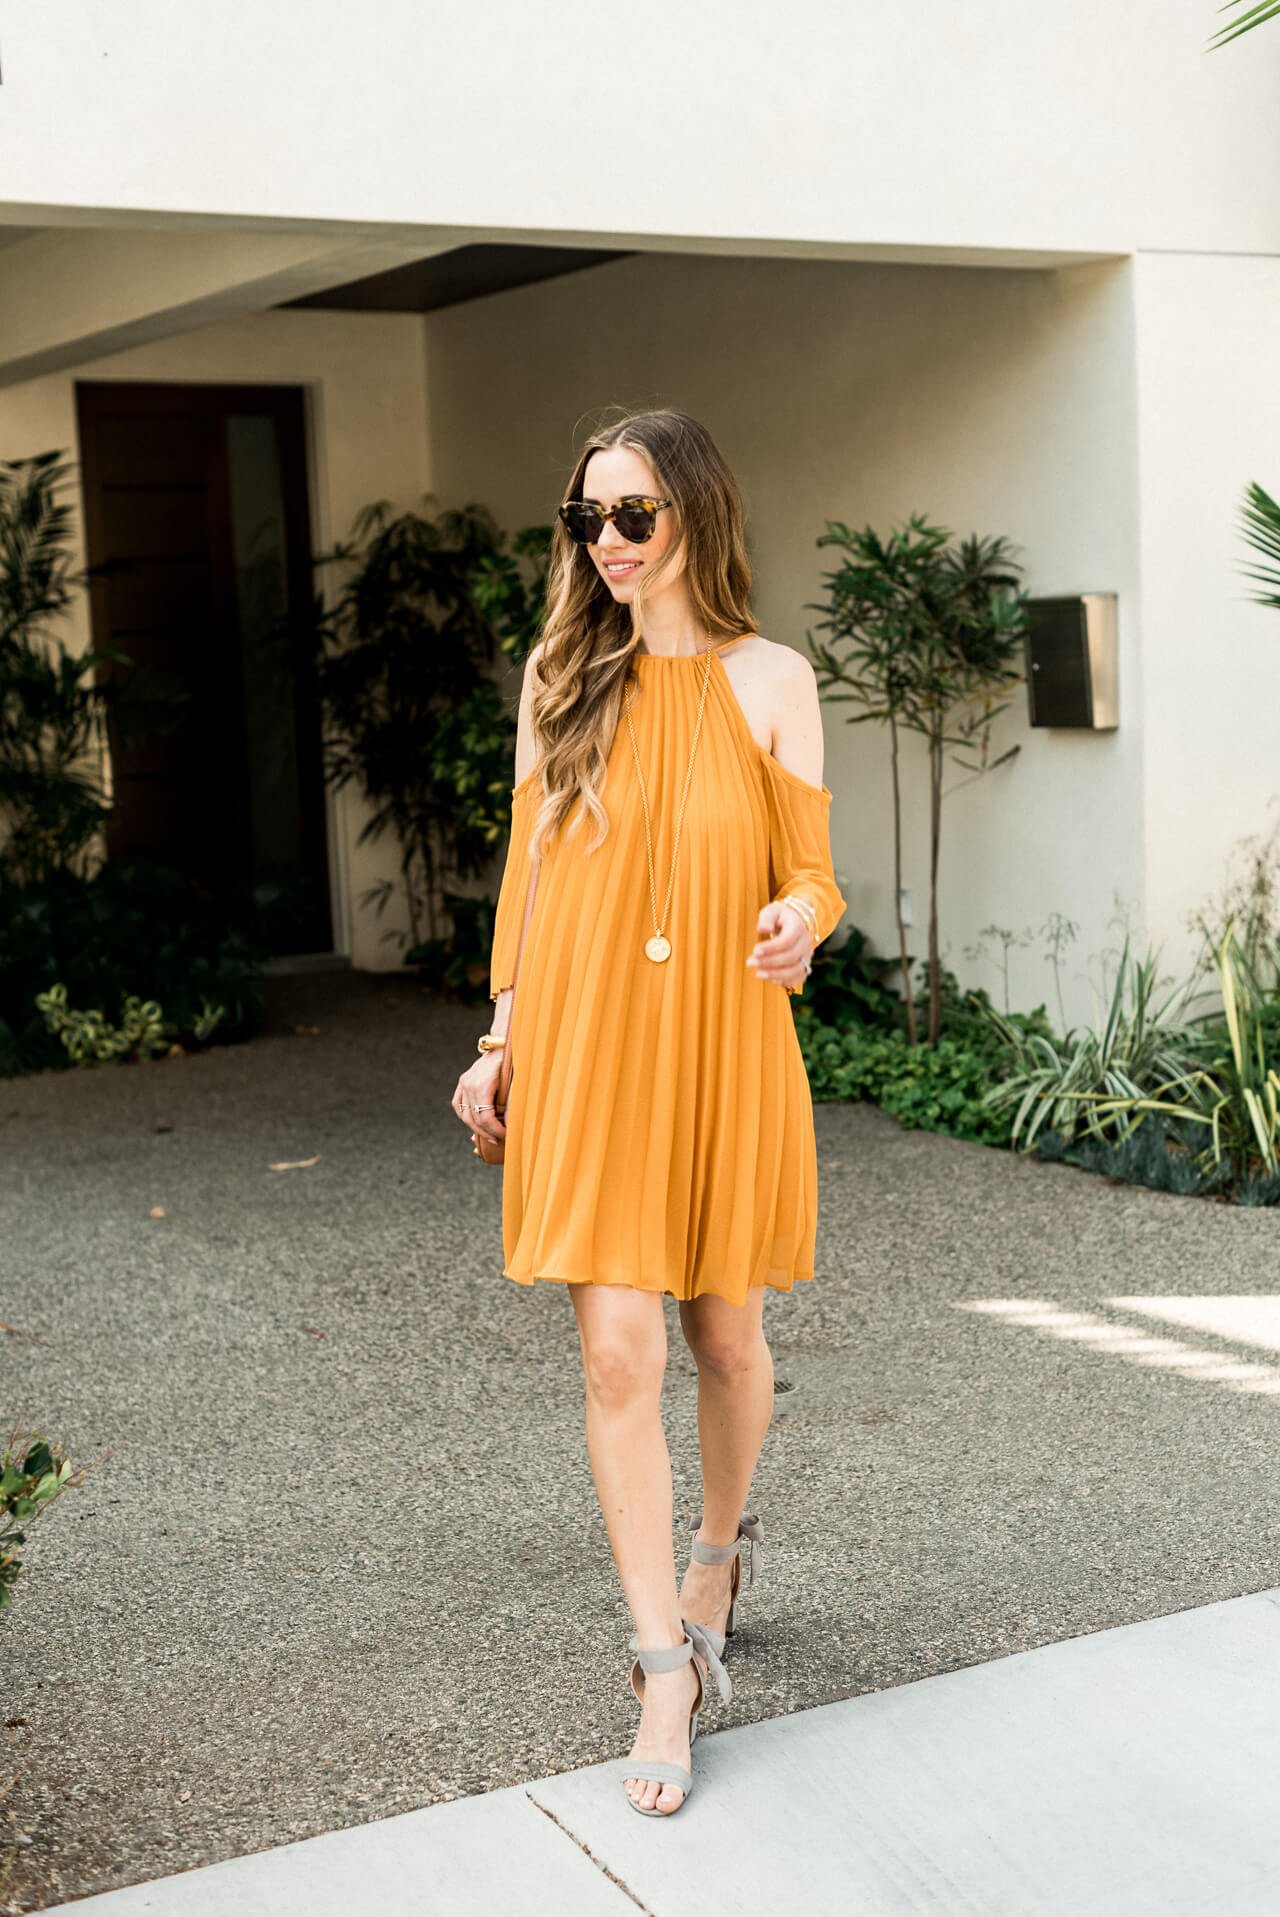 enjoying this sunshine in this pleated dress - M Loves M @marmar